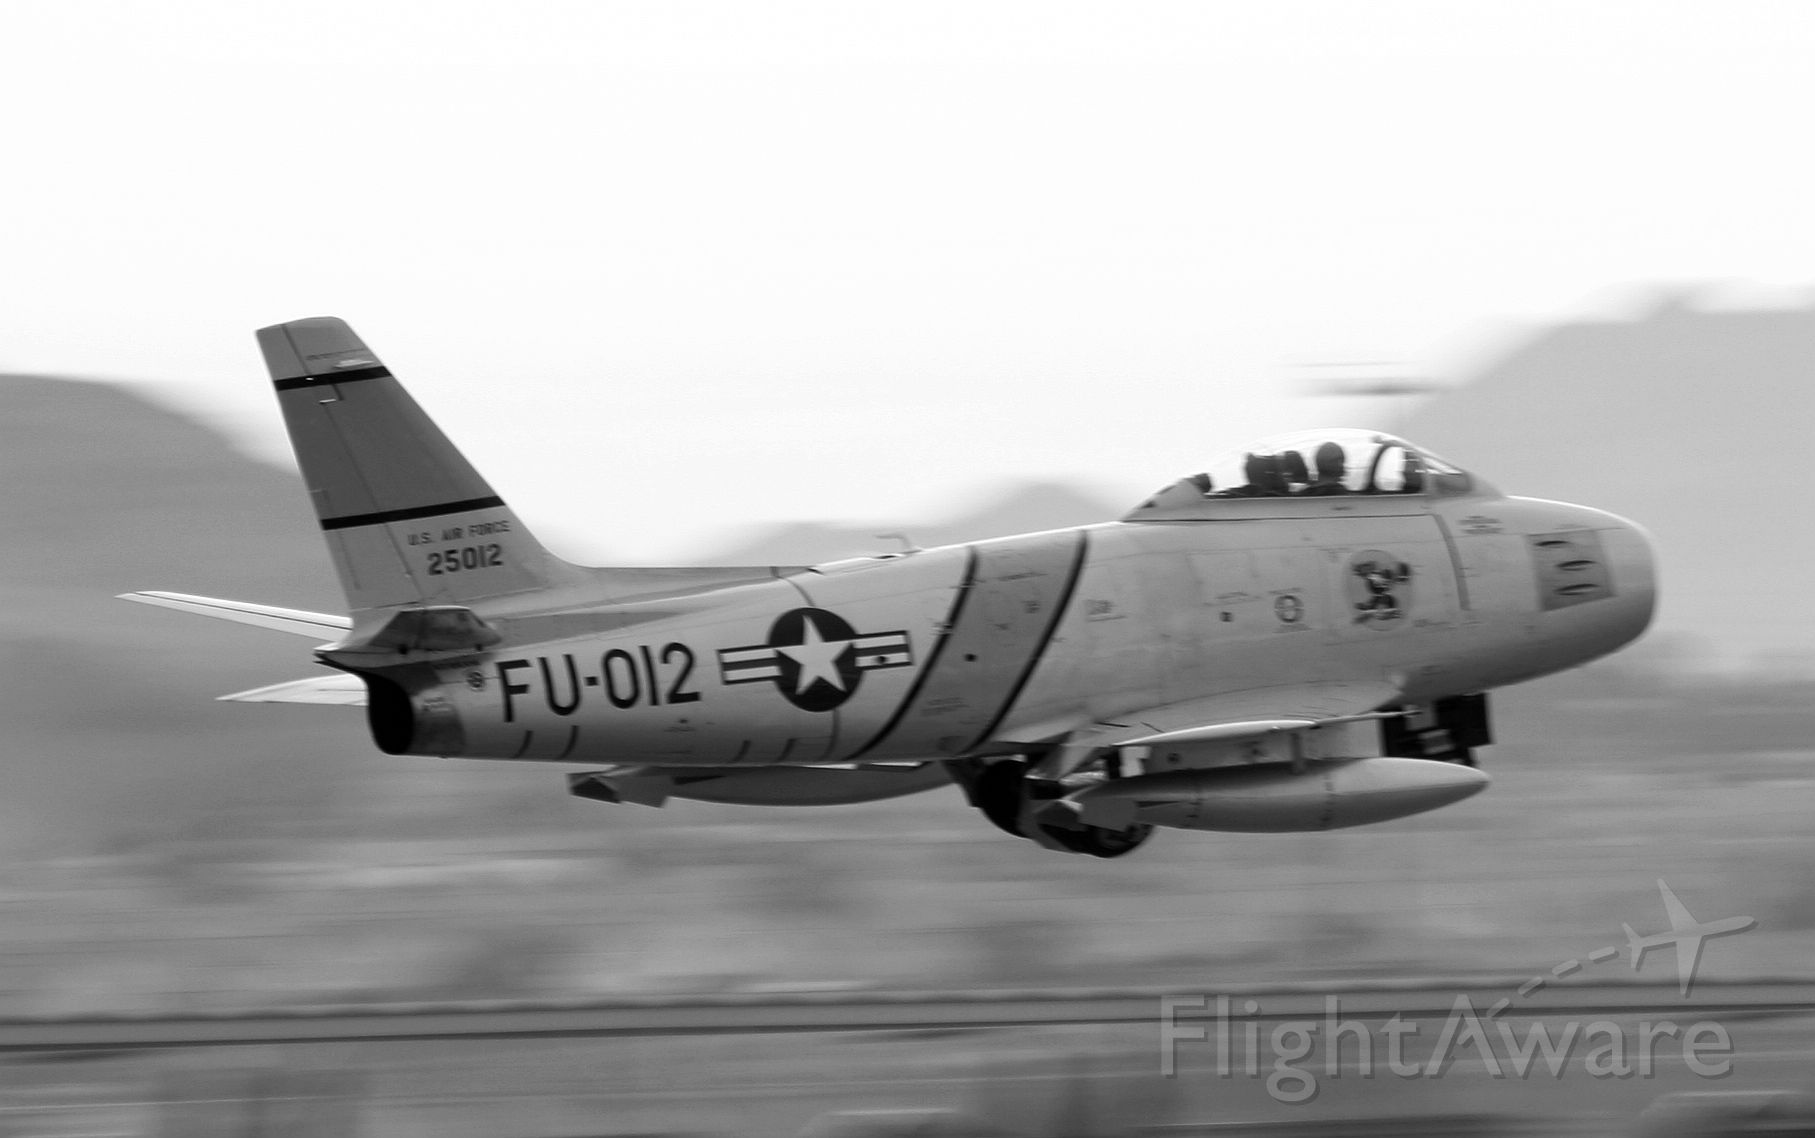 North American F-86 Sabre (FU012) - Saber Launch